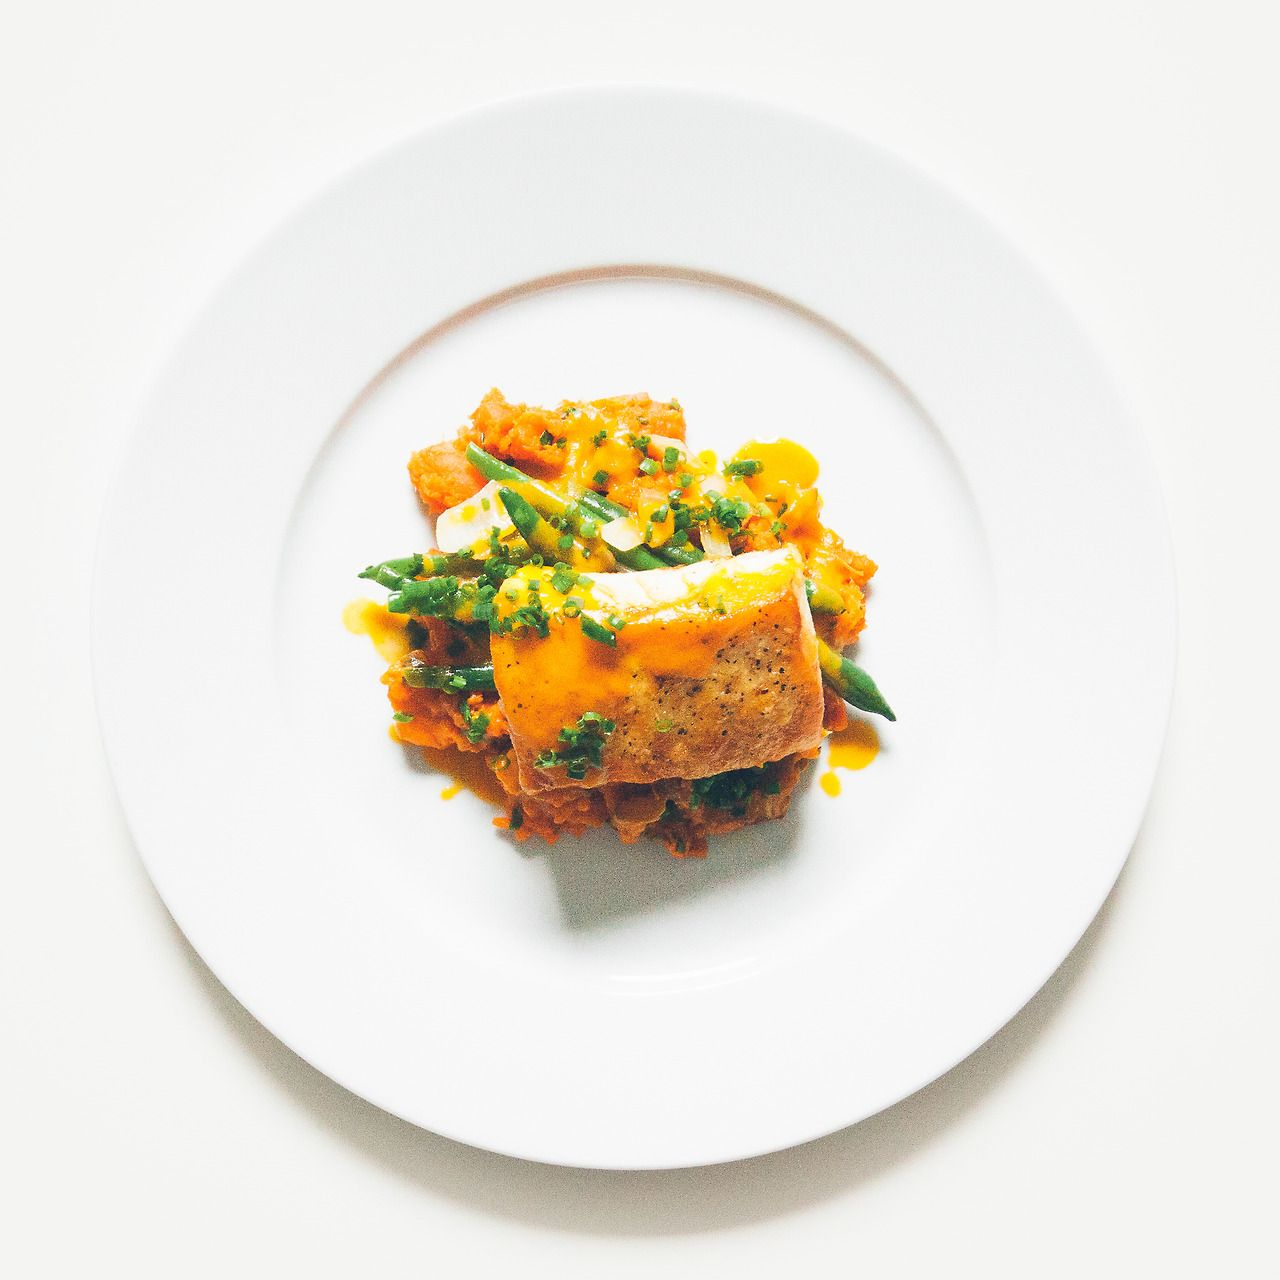 French Cuisse - Roast Halibut With Carrot Butter